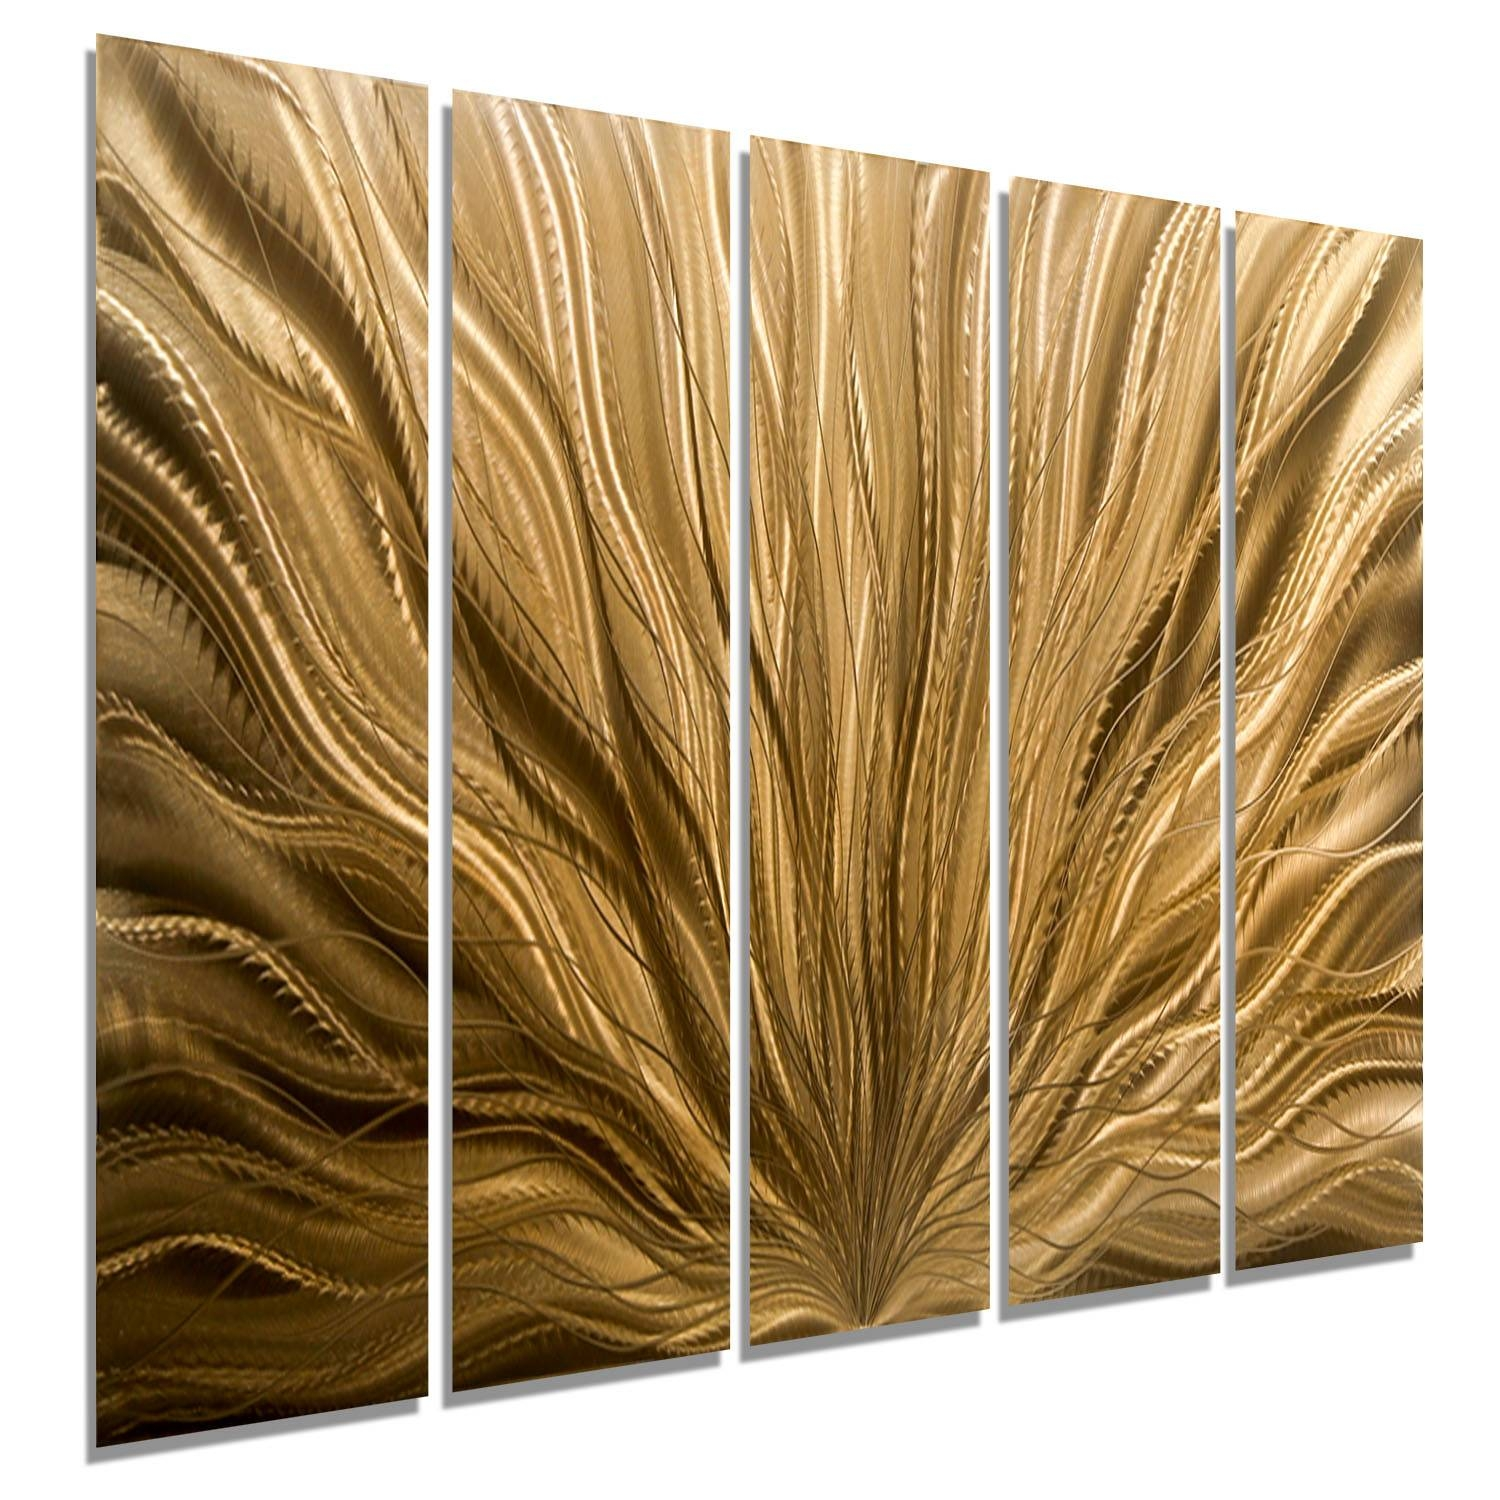 Copper Plumage Epic – Extra Large Light Copper Abstract Metal Wall With Regard To Most Current Metallic Wall Art (View 18 of 25)